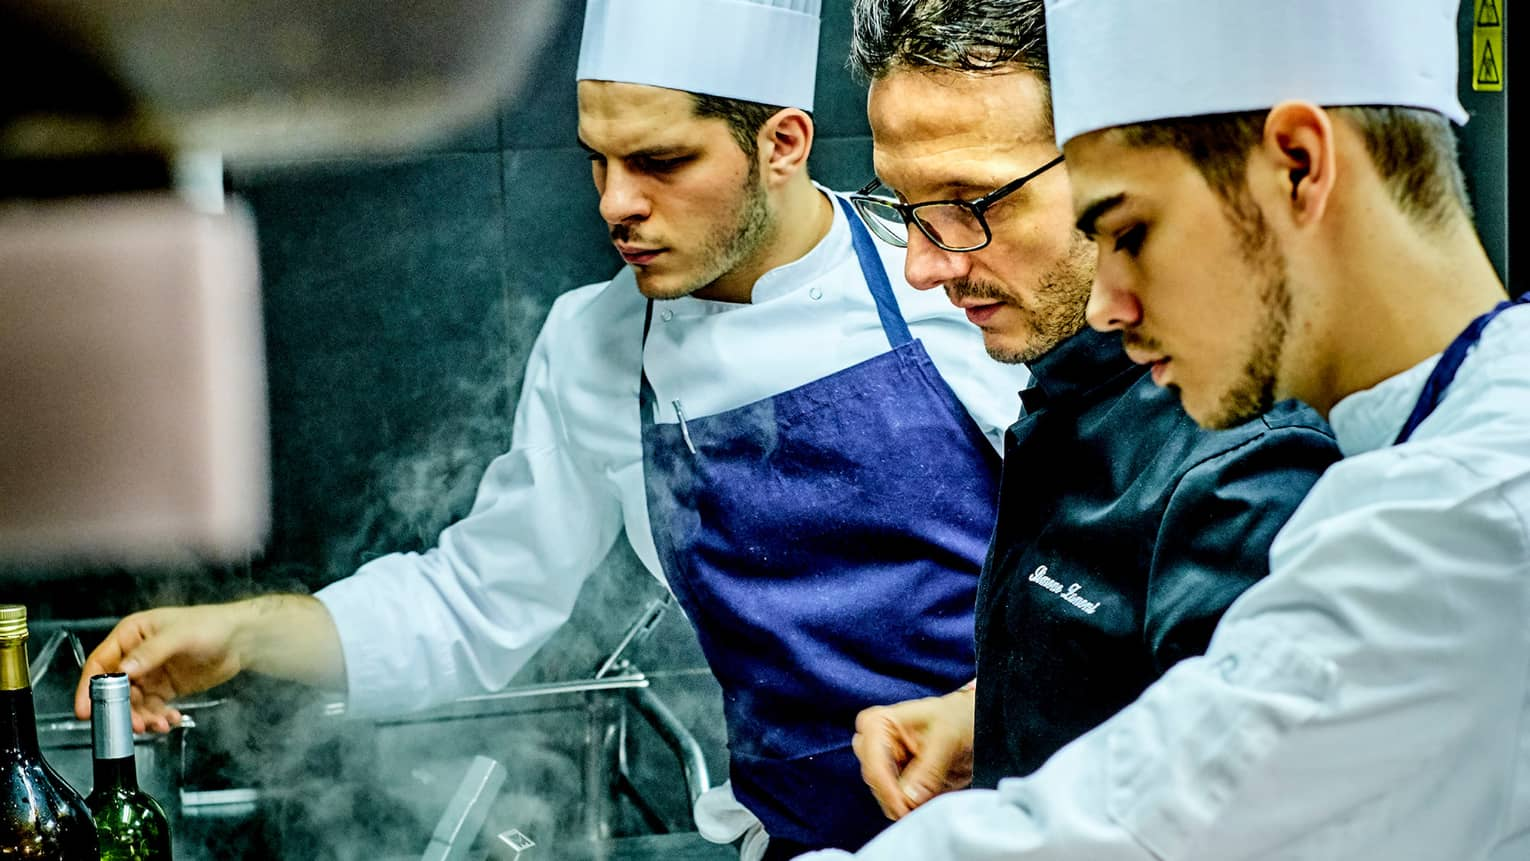 Chef Simone Zanoni and team look over stove